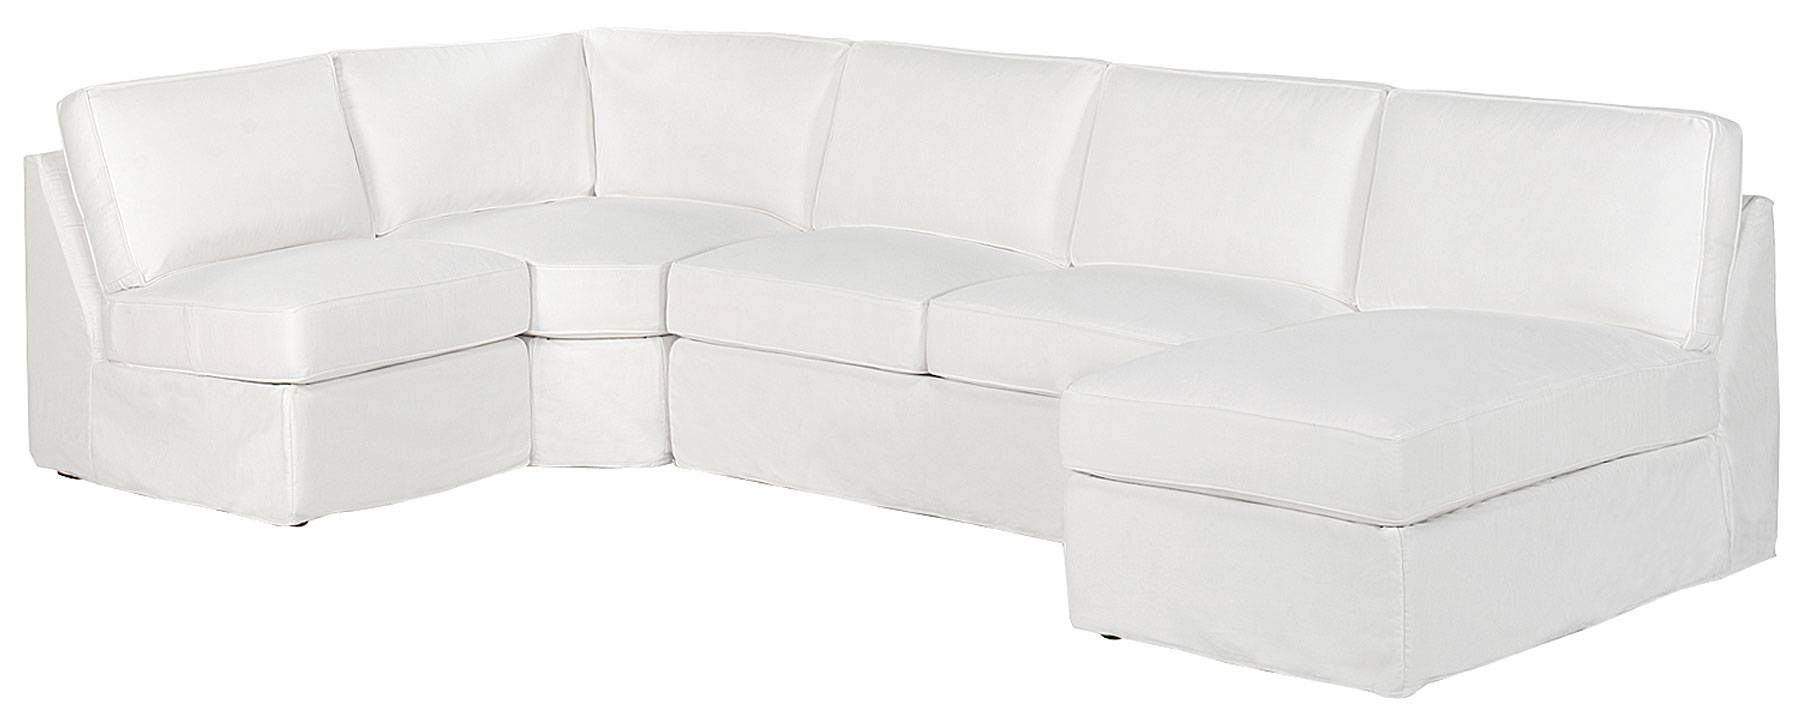 Ava Armless Sectional | Club Furniture pertaining to Armless Sectional Sofas (Image 3 of 30)